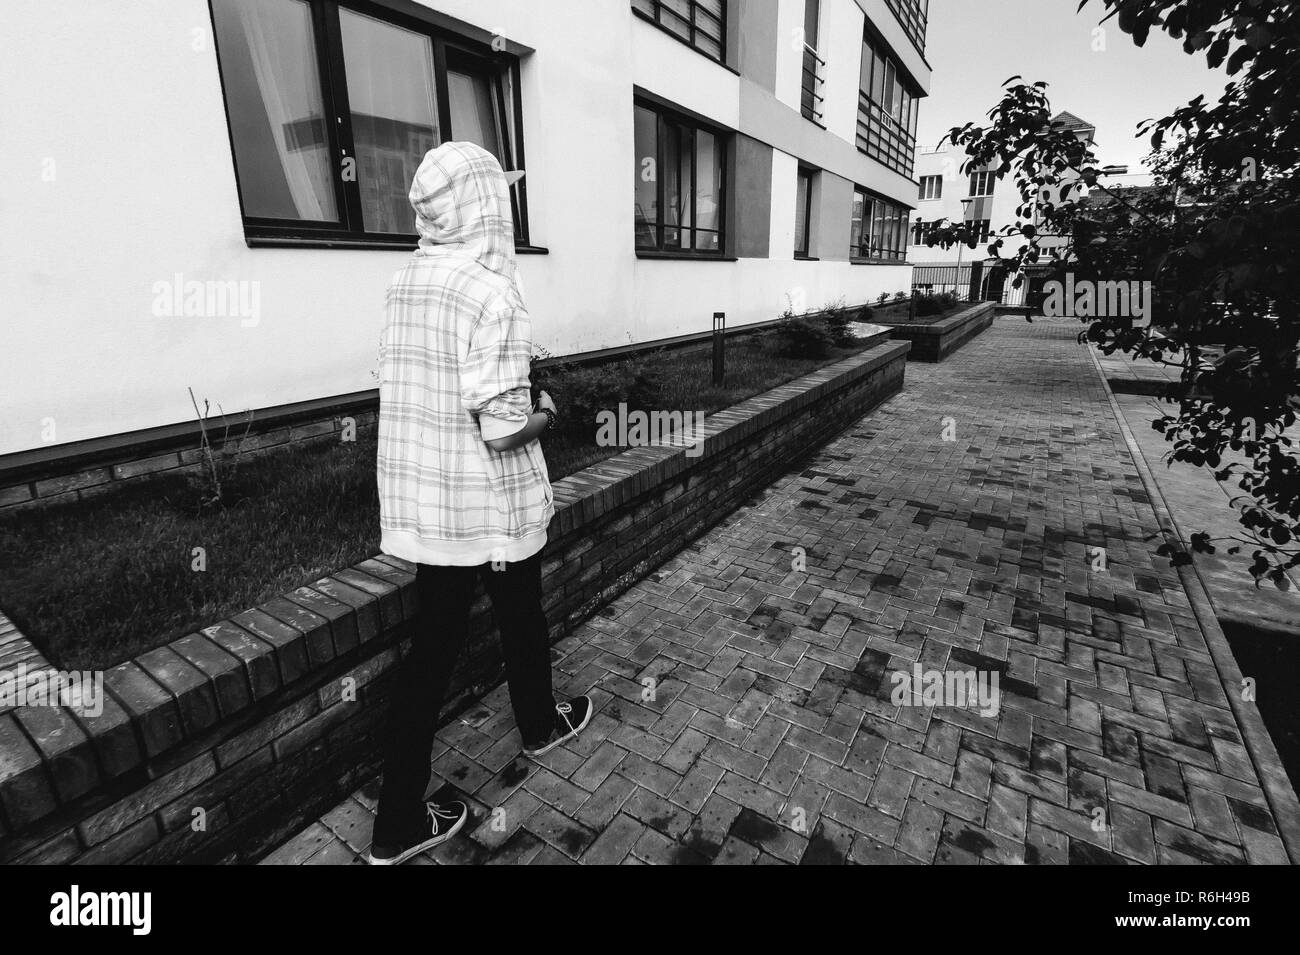 young man with beard in light checkered jacket with hood walking freely around city - Stock Image